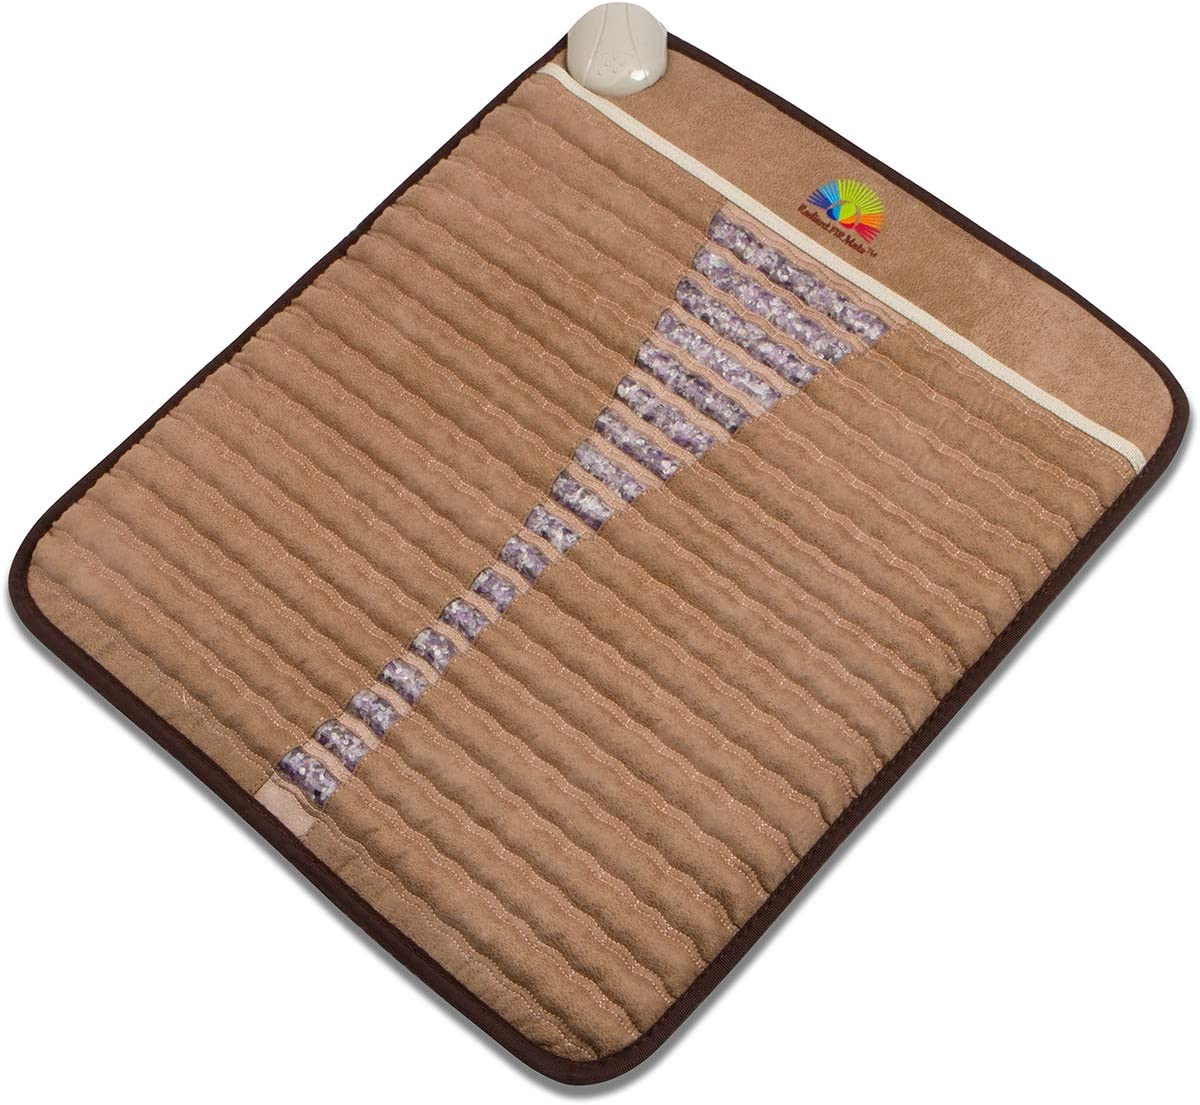 "Radiant Far Infrared Small Mini Mat Pad with 100% Amethyst Crystal Radiant Heat Therapy (20"" X 23"") FDA Registered Manuf - Adjustable Temp Settings - Flexible."